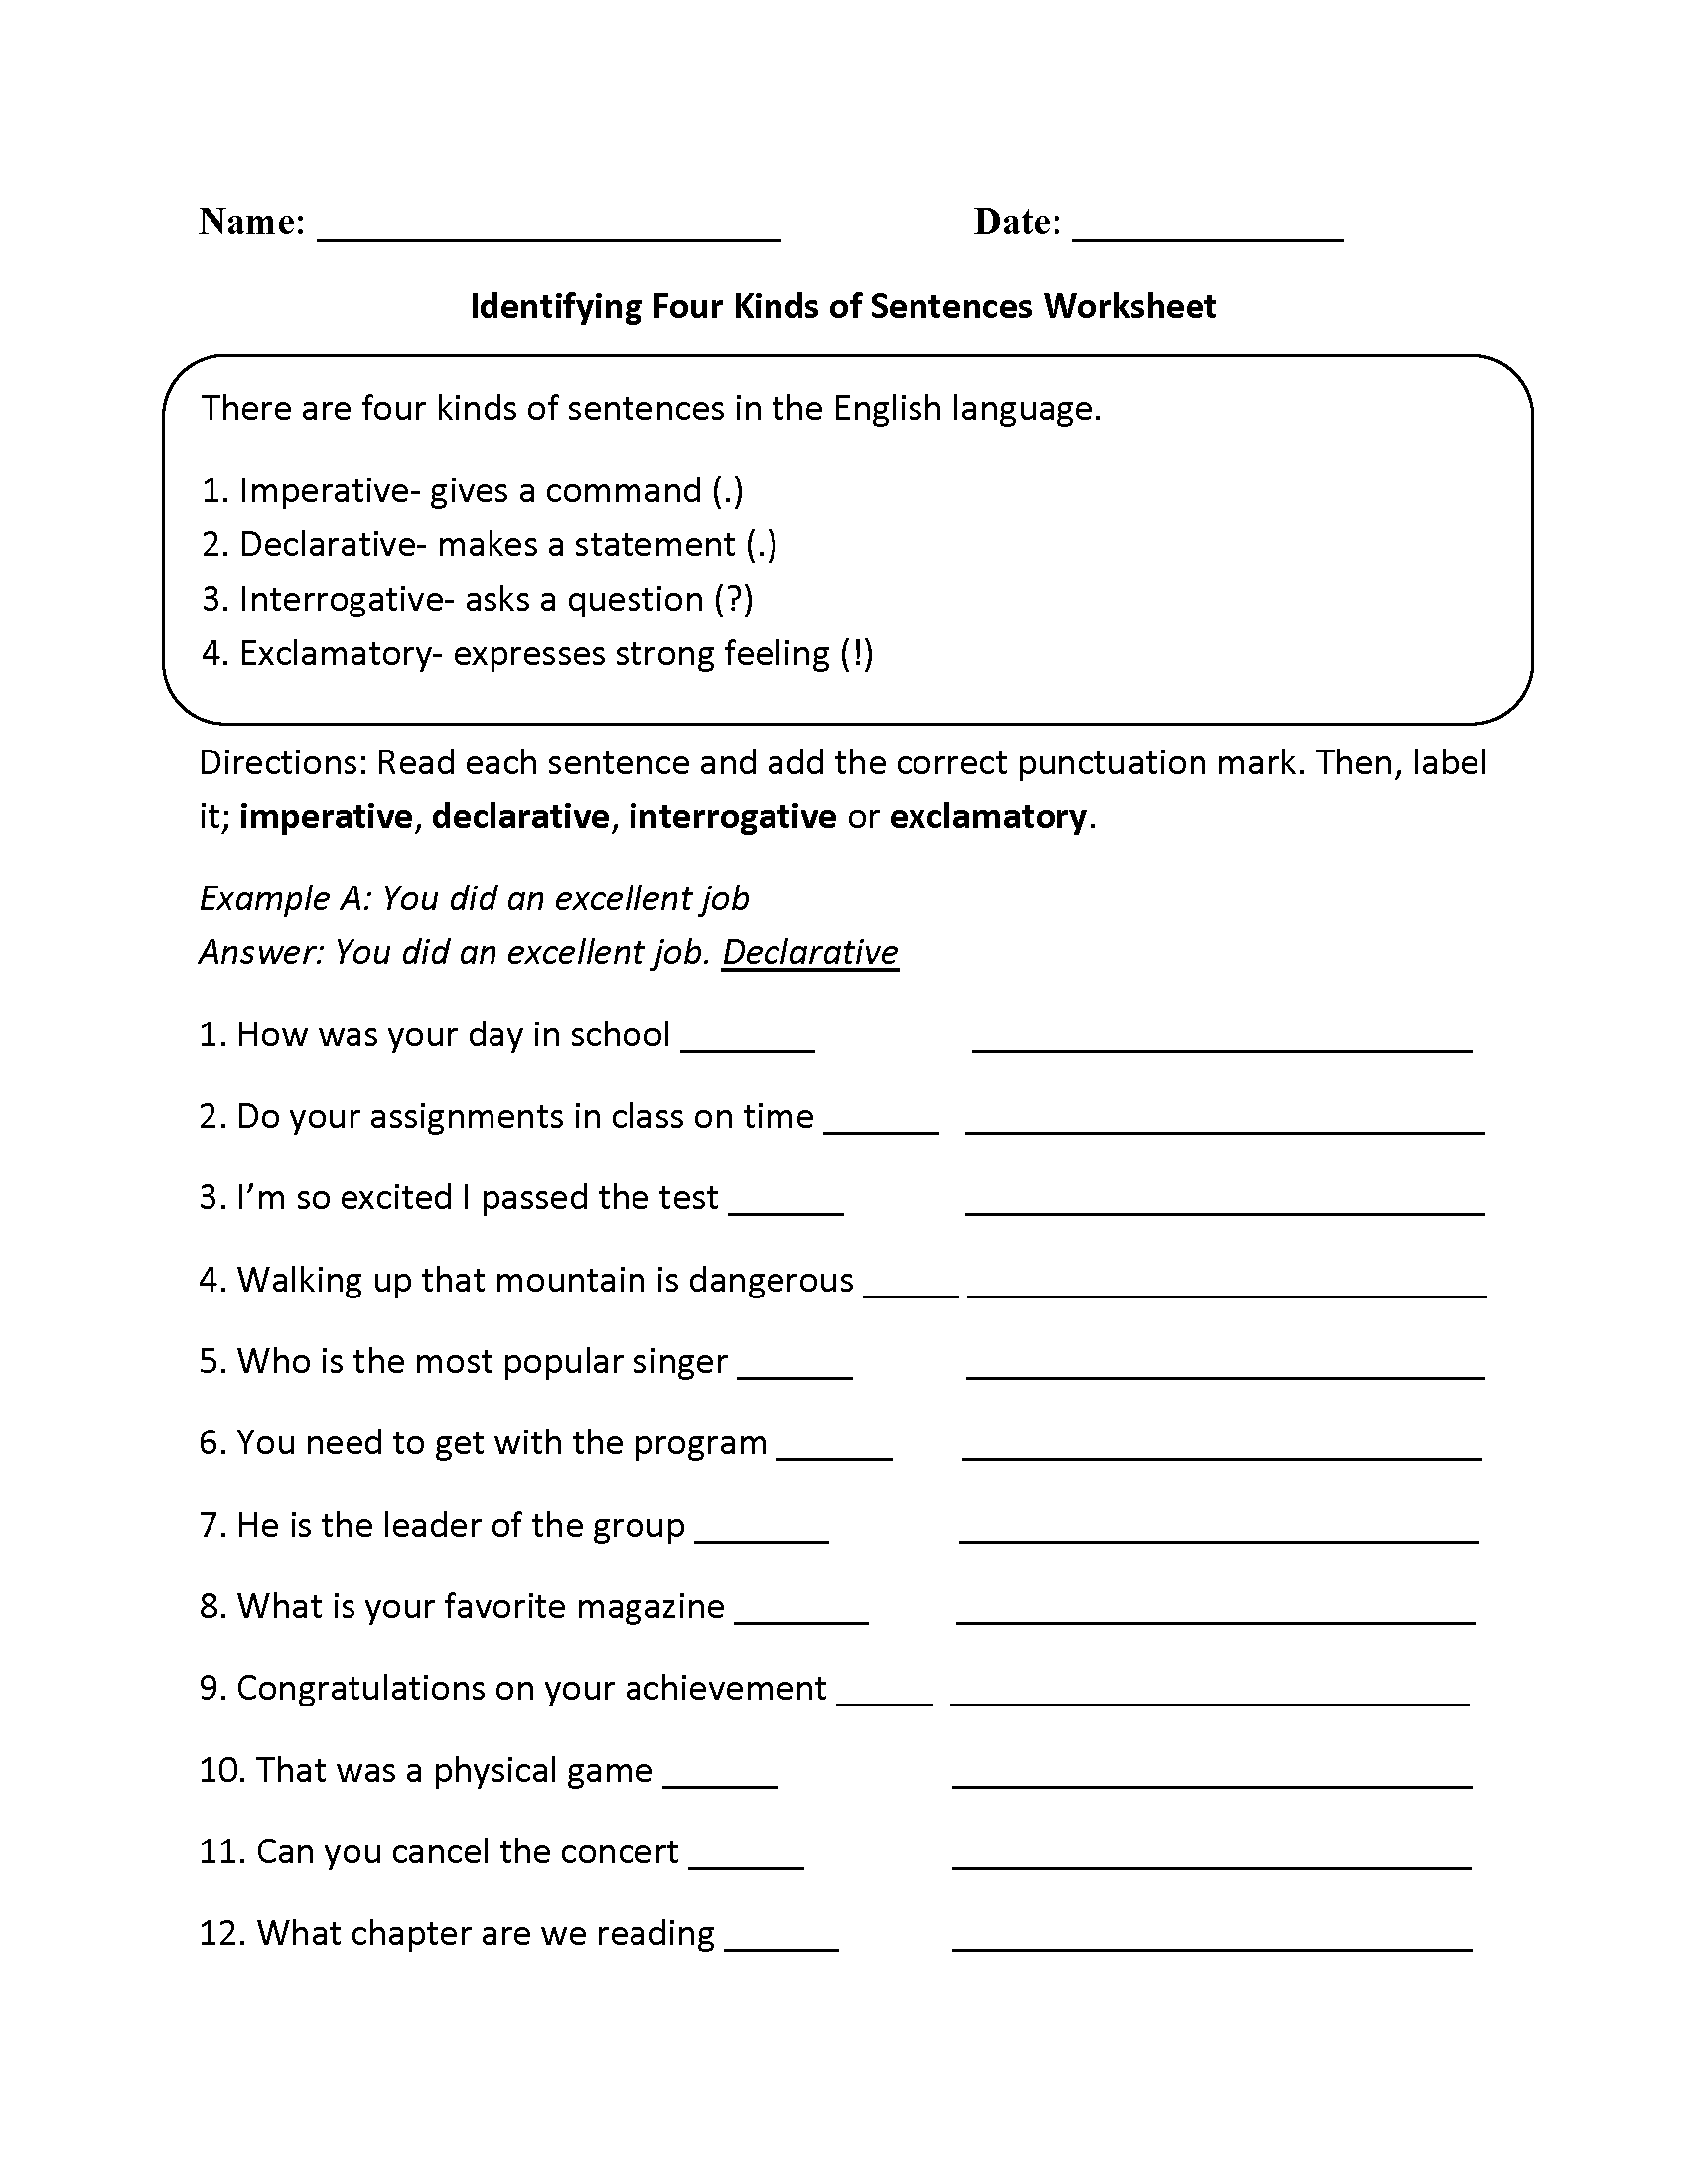 Free Worksheet Four Types Of Sentences Worksheet kinds of sentences worksheets practicing four worksheet